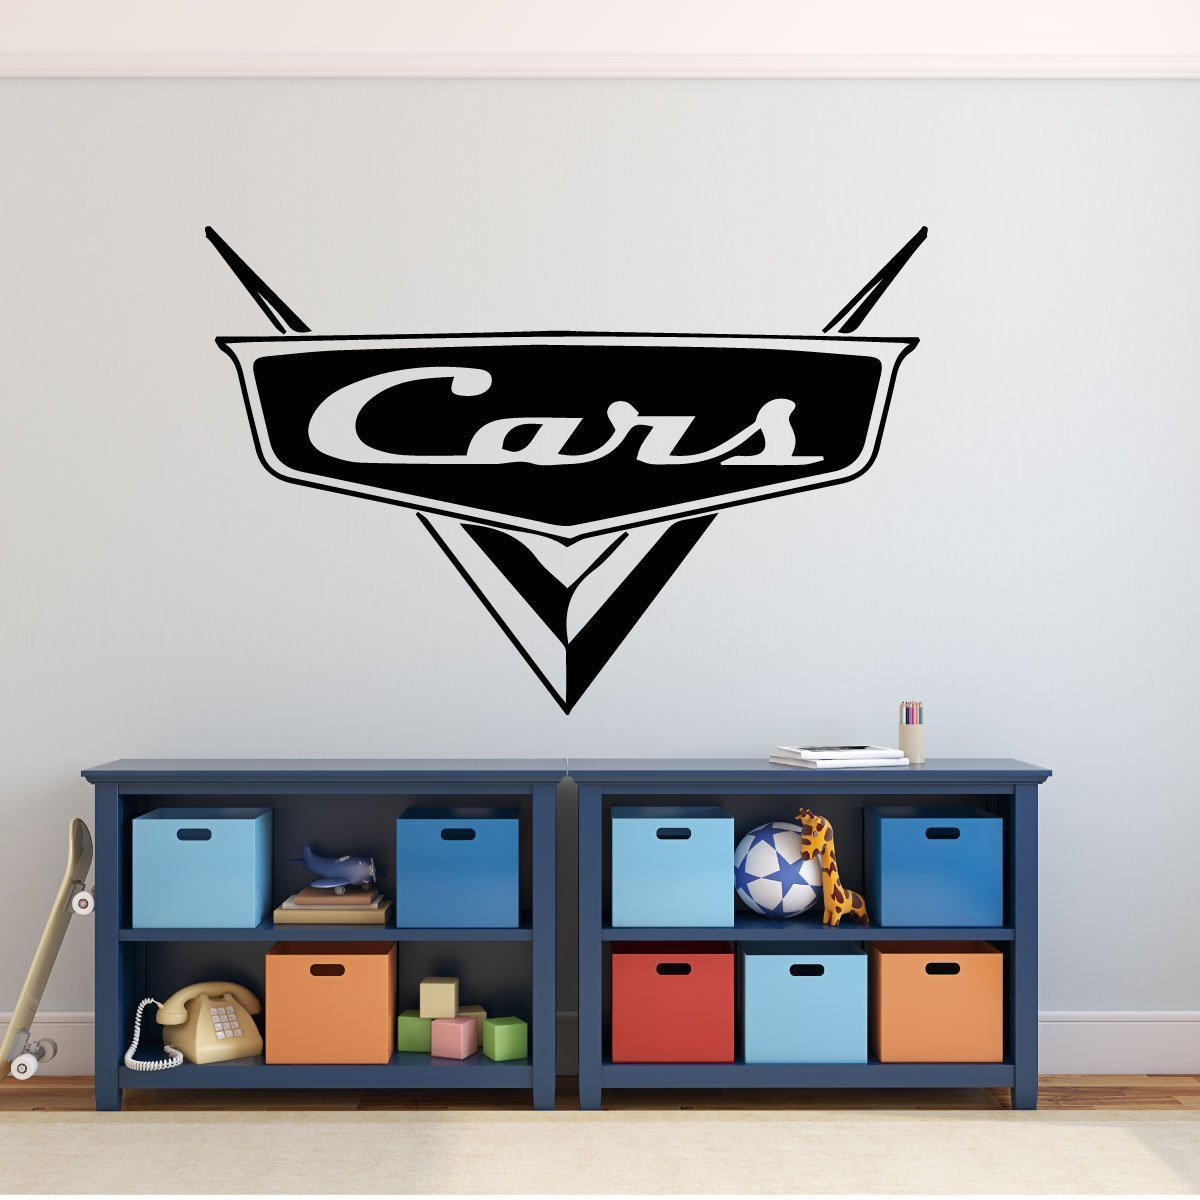 Custom Name Disney Pixar Cars Decal - Personalized Emblem Wall Decal for Man Cave or Garage - Removable Vinyl Wall Decoration for Boy's or Girls Bedroom, Playroom, Gameroom or Office